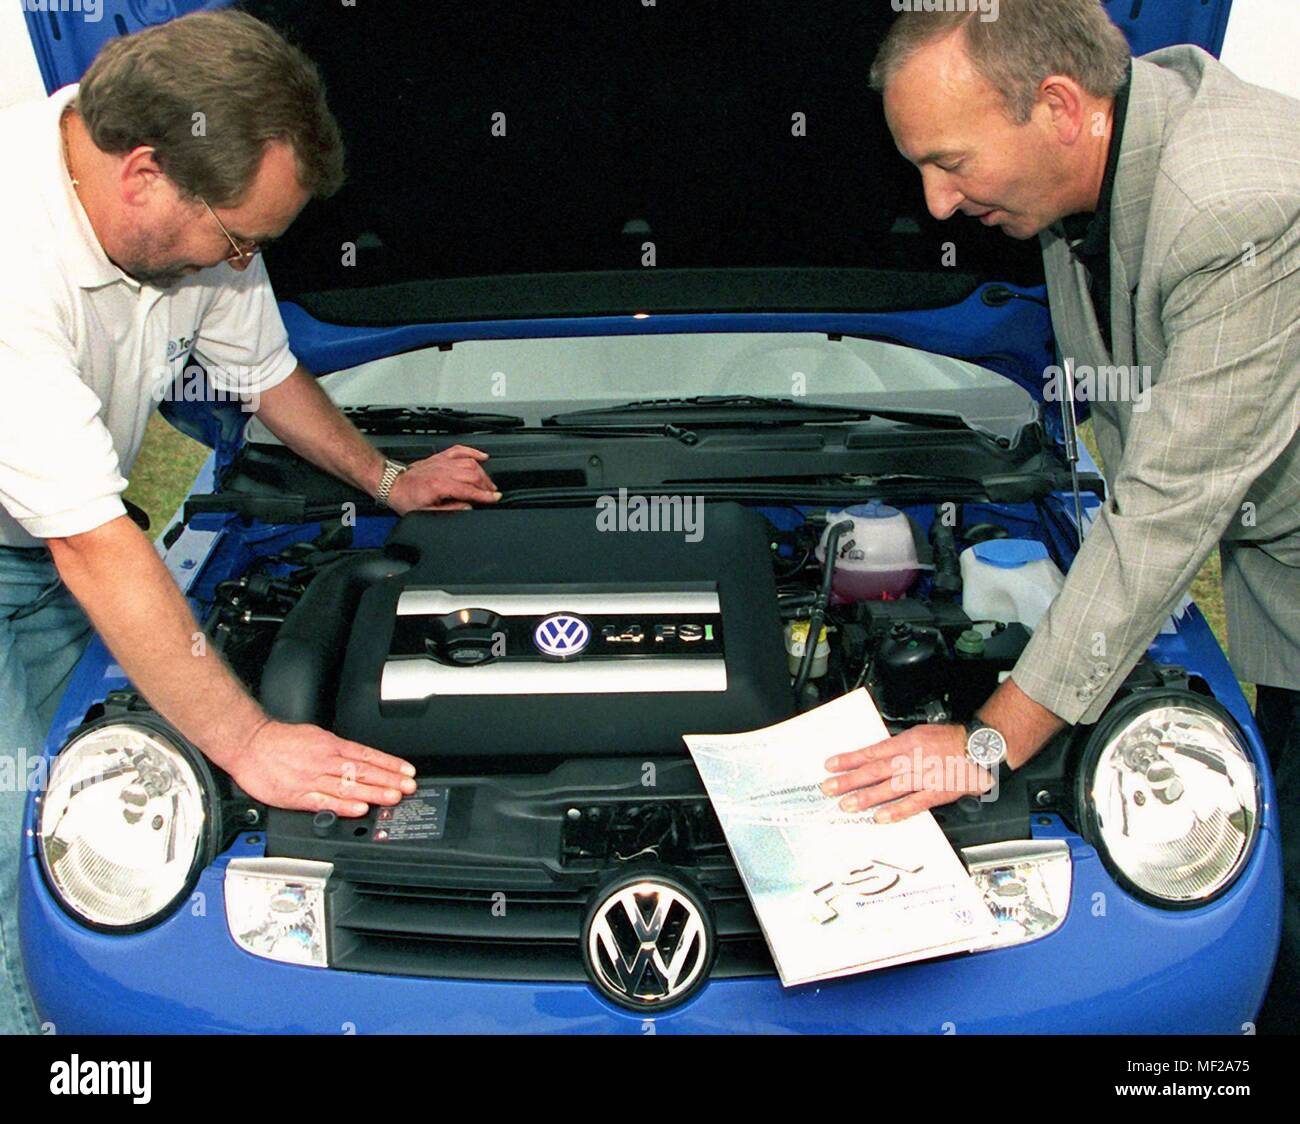 A gasoline-saving direct-injection engine, the Volkswagen offers as the first European automaker in a VW Lupo from withte 2000, consider on 10.9.1999 at the presentation of the 1.4-liter engine in Lower Saxony Jeversen the factory employees Gerhard Spitzer (l) and Klaus Badtke (r). The engine should this week one of the technical highlights of the International Motor Show (IAA) in Frankfurt/Main. Due to the new technology, Lupo consumption and exhaust gases are dropping in the small car. Full advantage of the direct injection but only with sulfur-free fuel. VW therefore urges its short-term - Stock Image